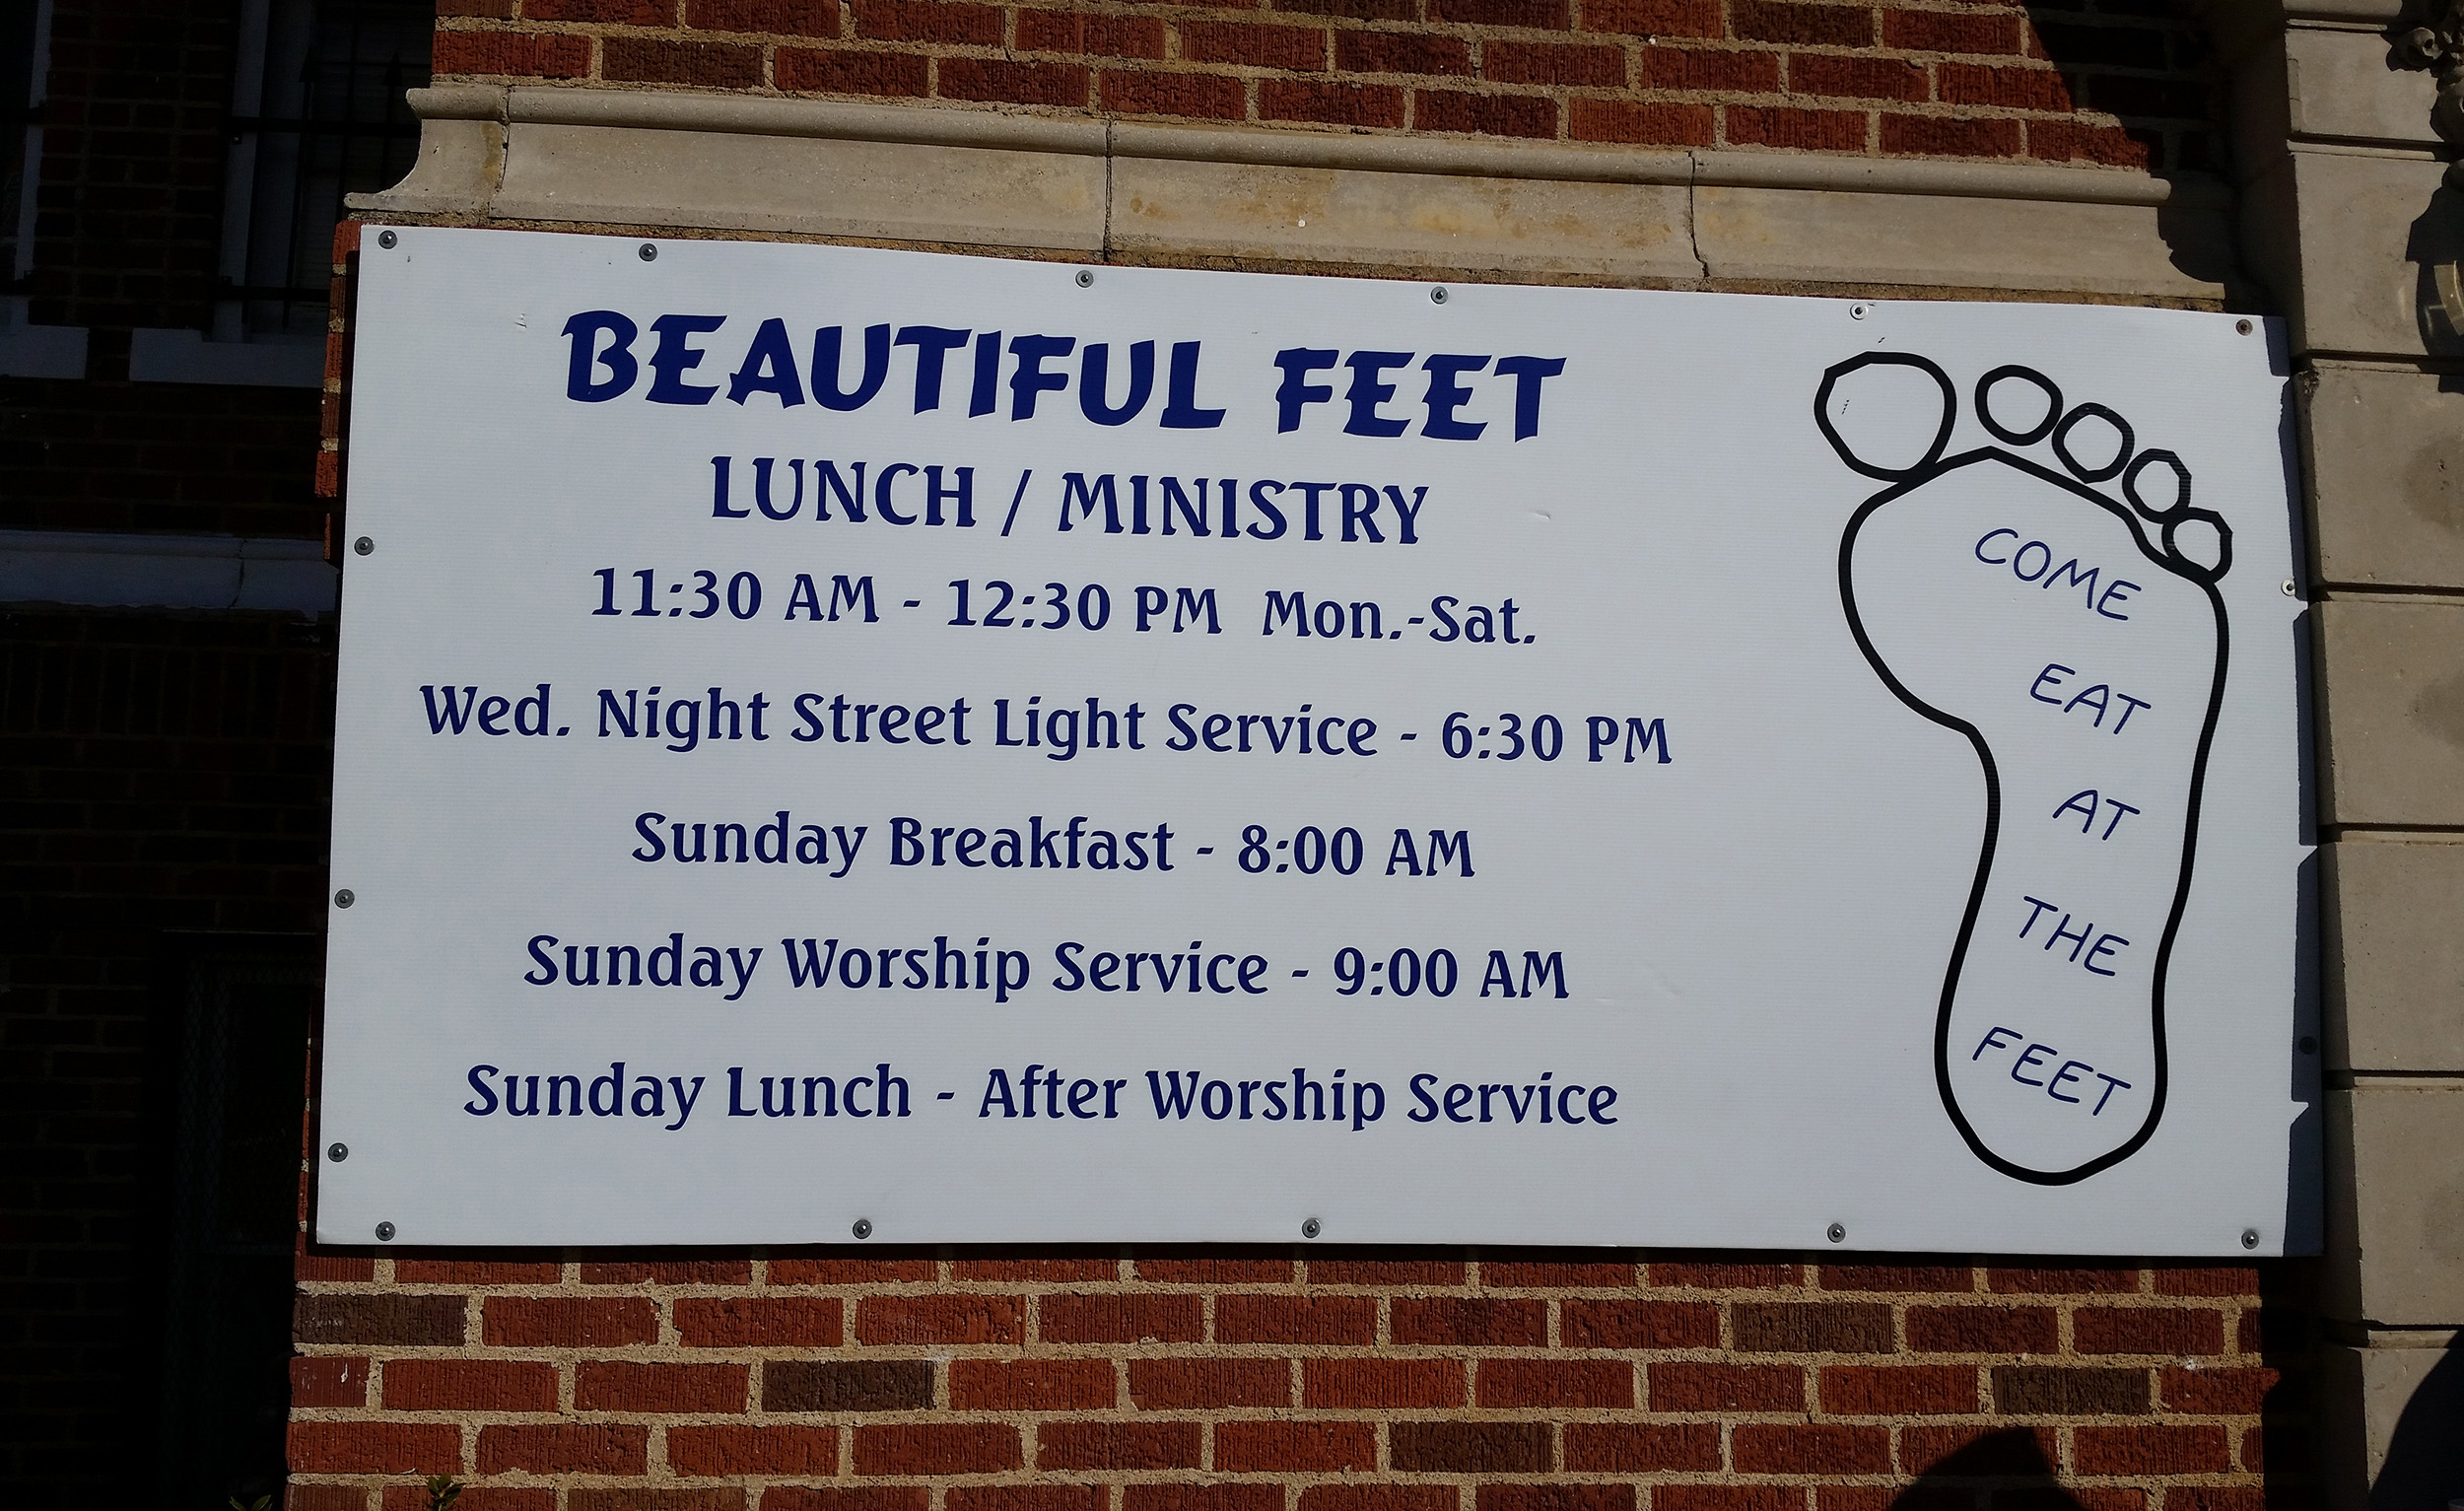 Teams join God's work in inner-city Fort Worth